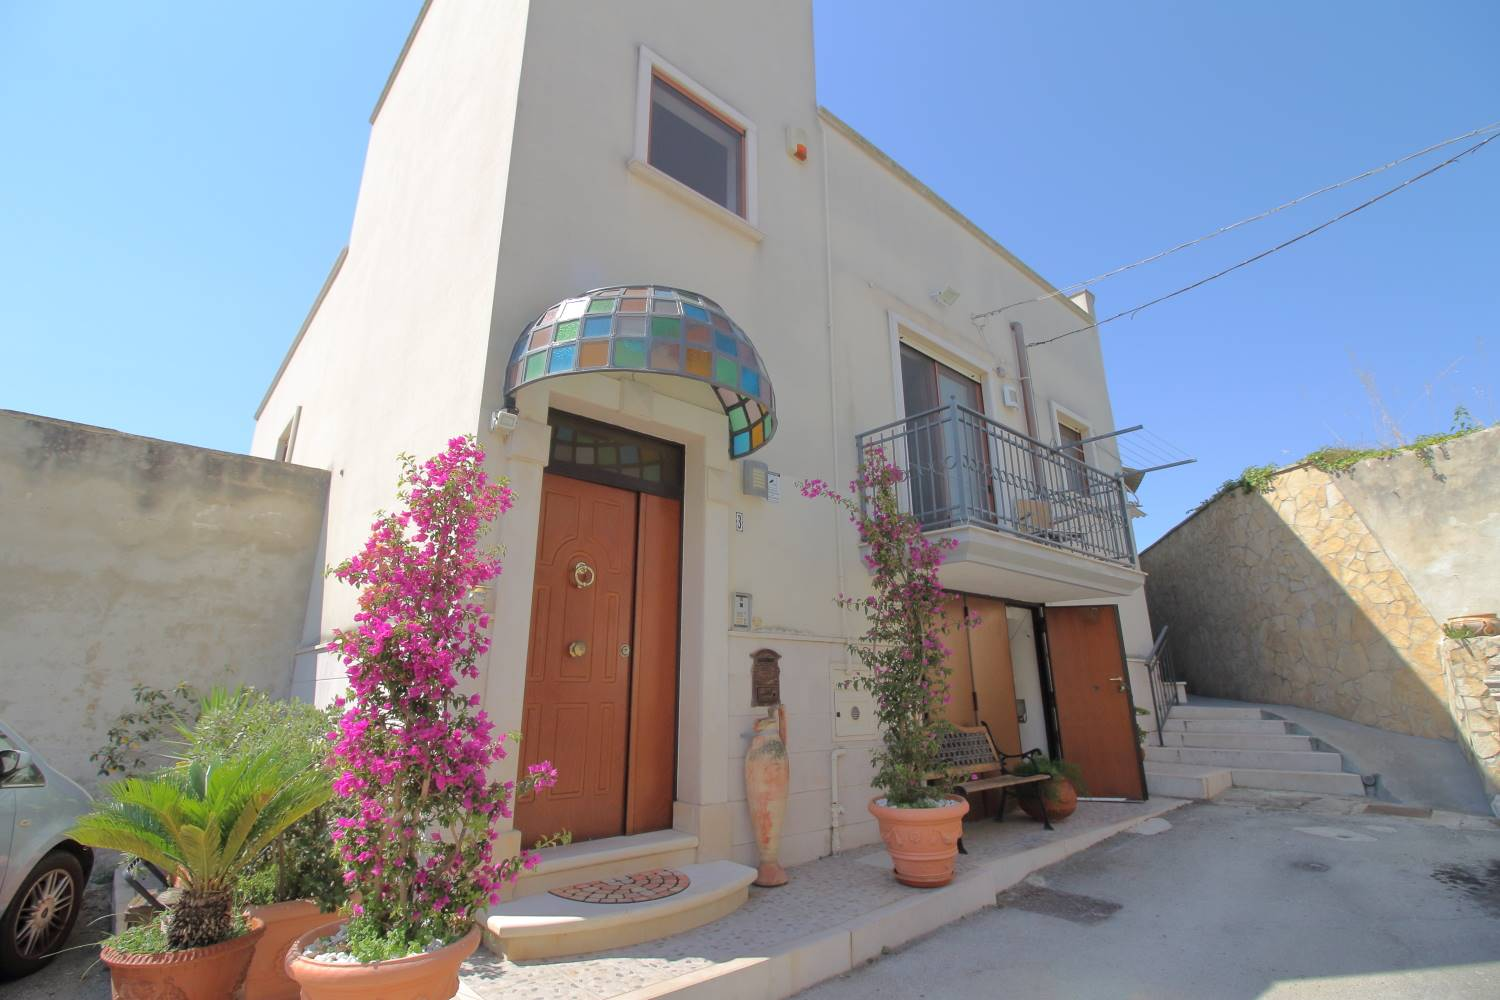 MONOPOLI, Detached house for sale, Excellent Condition, Heating Individual heating system, Energetic class: G, Epi: 165 kwh/m2 year, placed at 1°, composed by: 3 Rooms, Separate kitchen, , 2 Bedrooms,